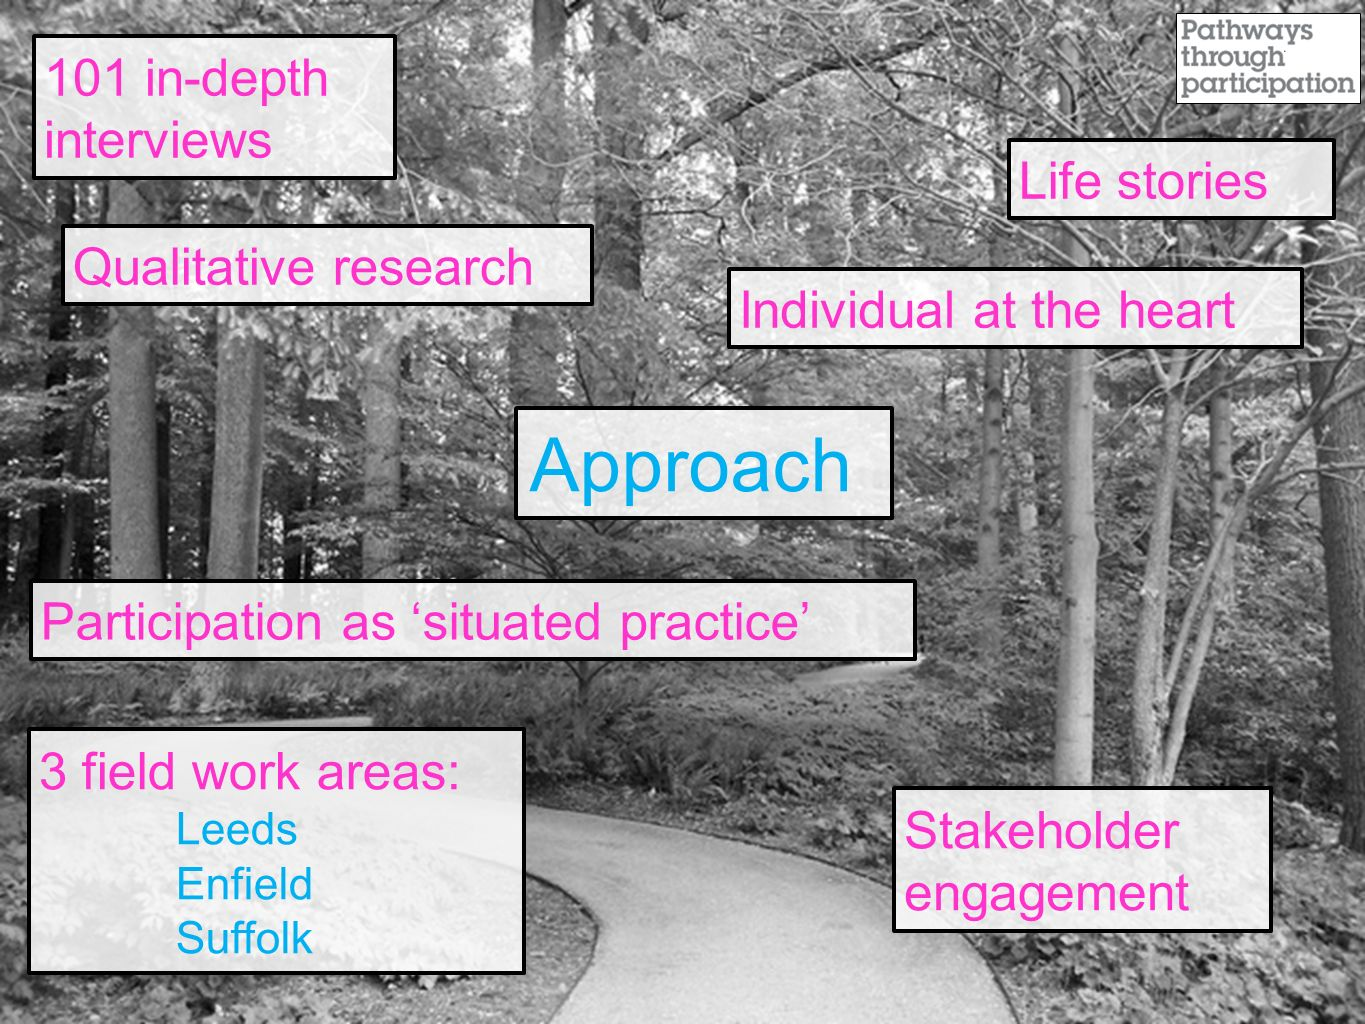 Approach 3 field work areas: Leeds Enfield Suffolk Individual at the heart Qualitative research 101 in-depth interviews Participation as 'situated pra